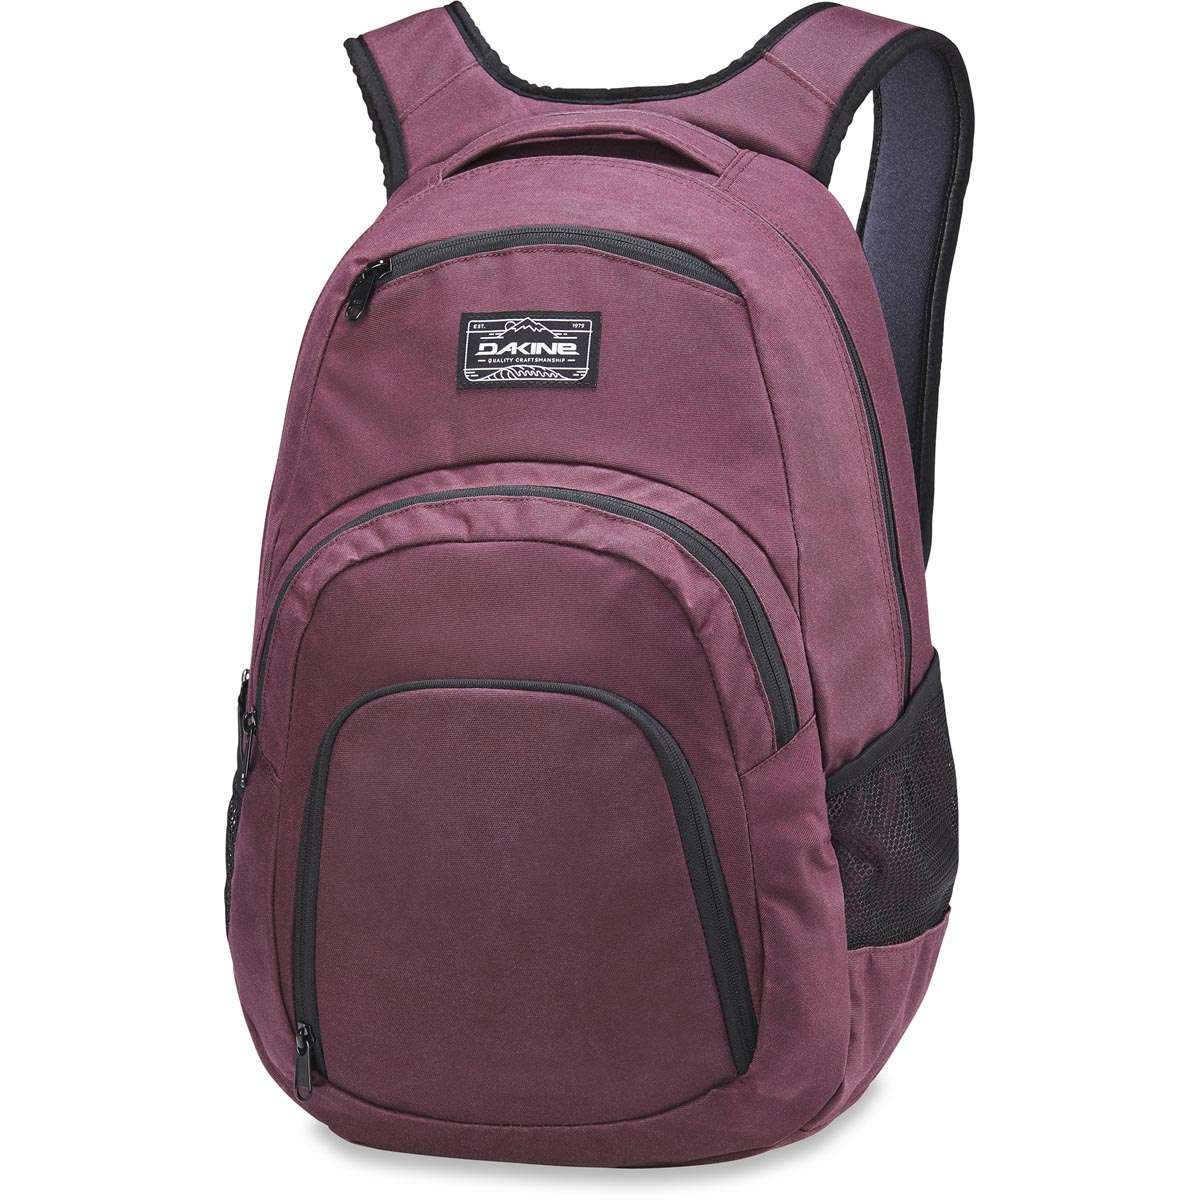 797a716d6f908 Dakine Campus 33L Backpack Plum Shadow